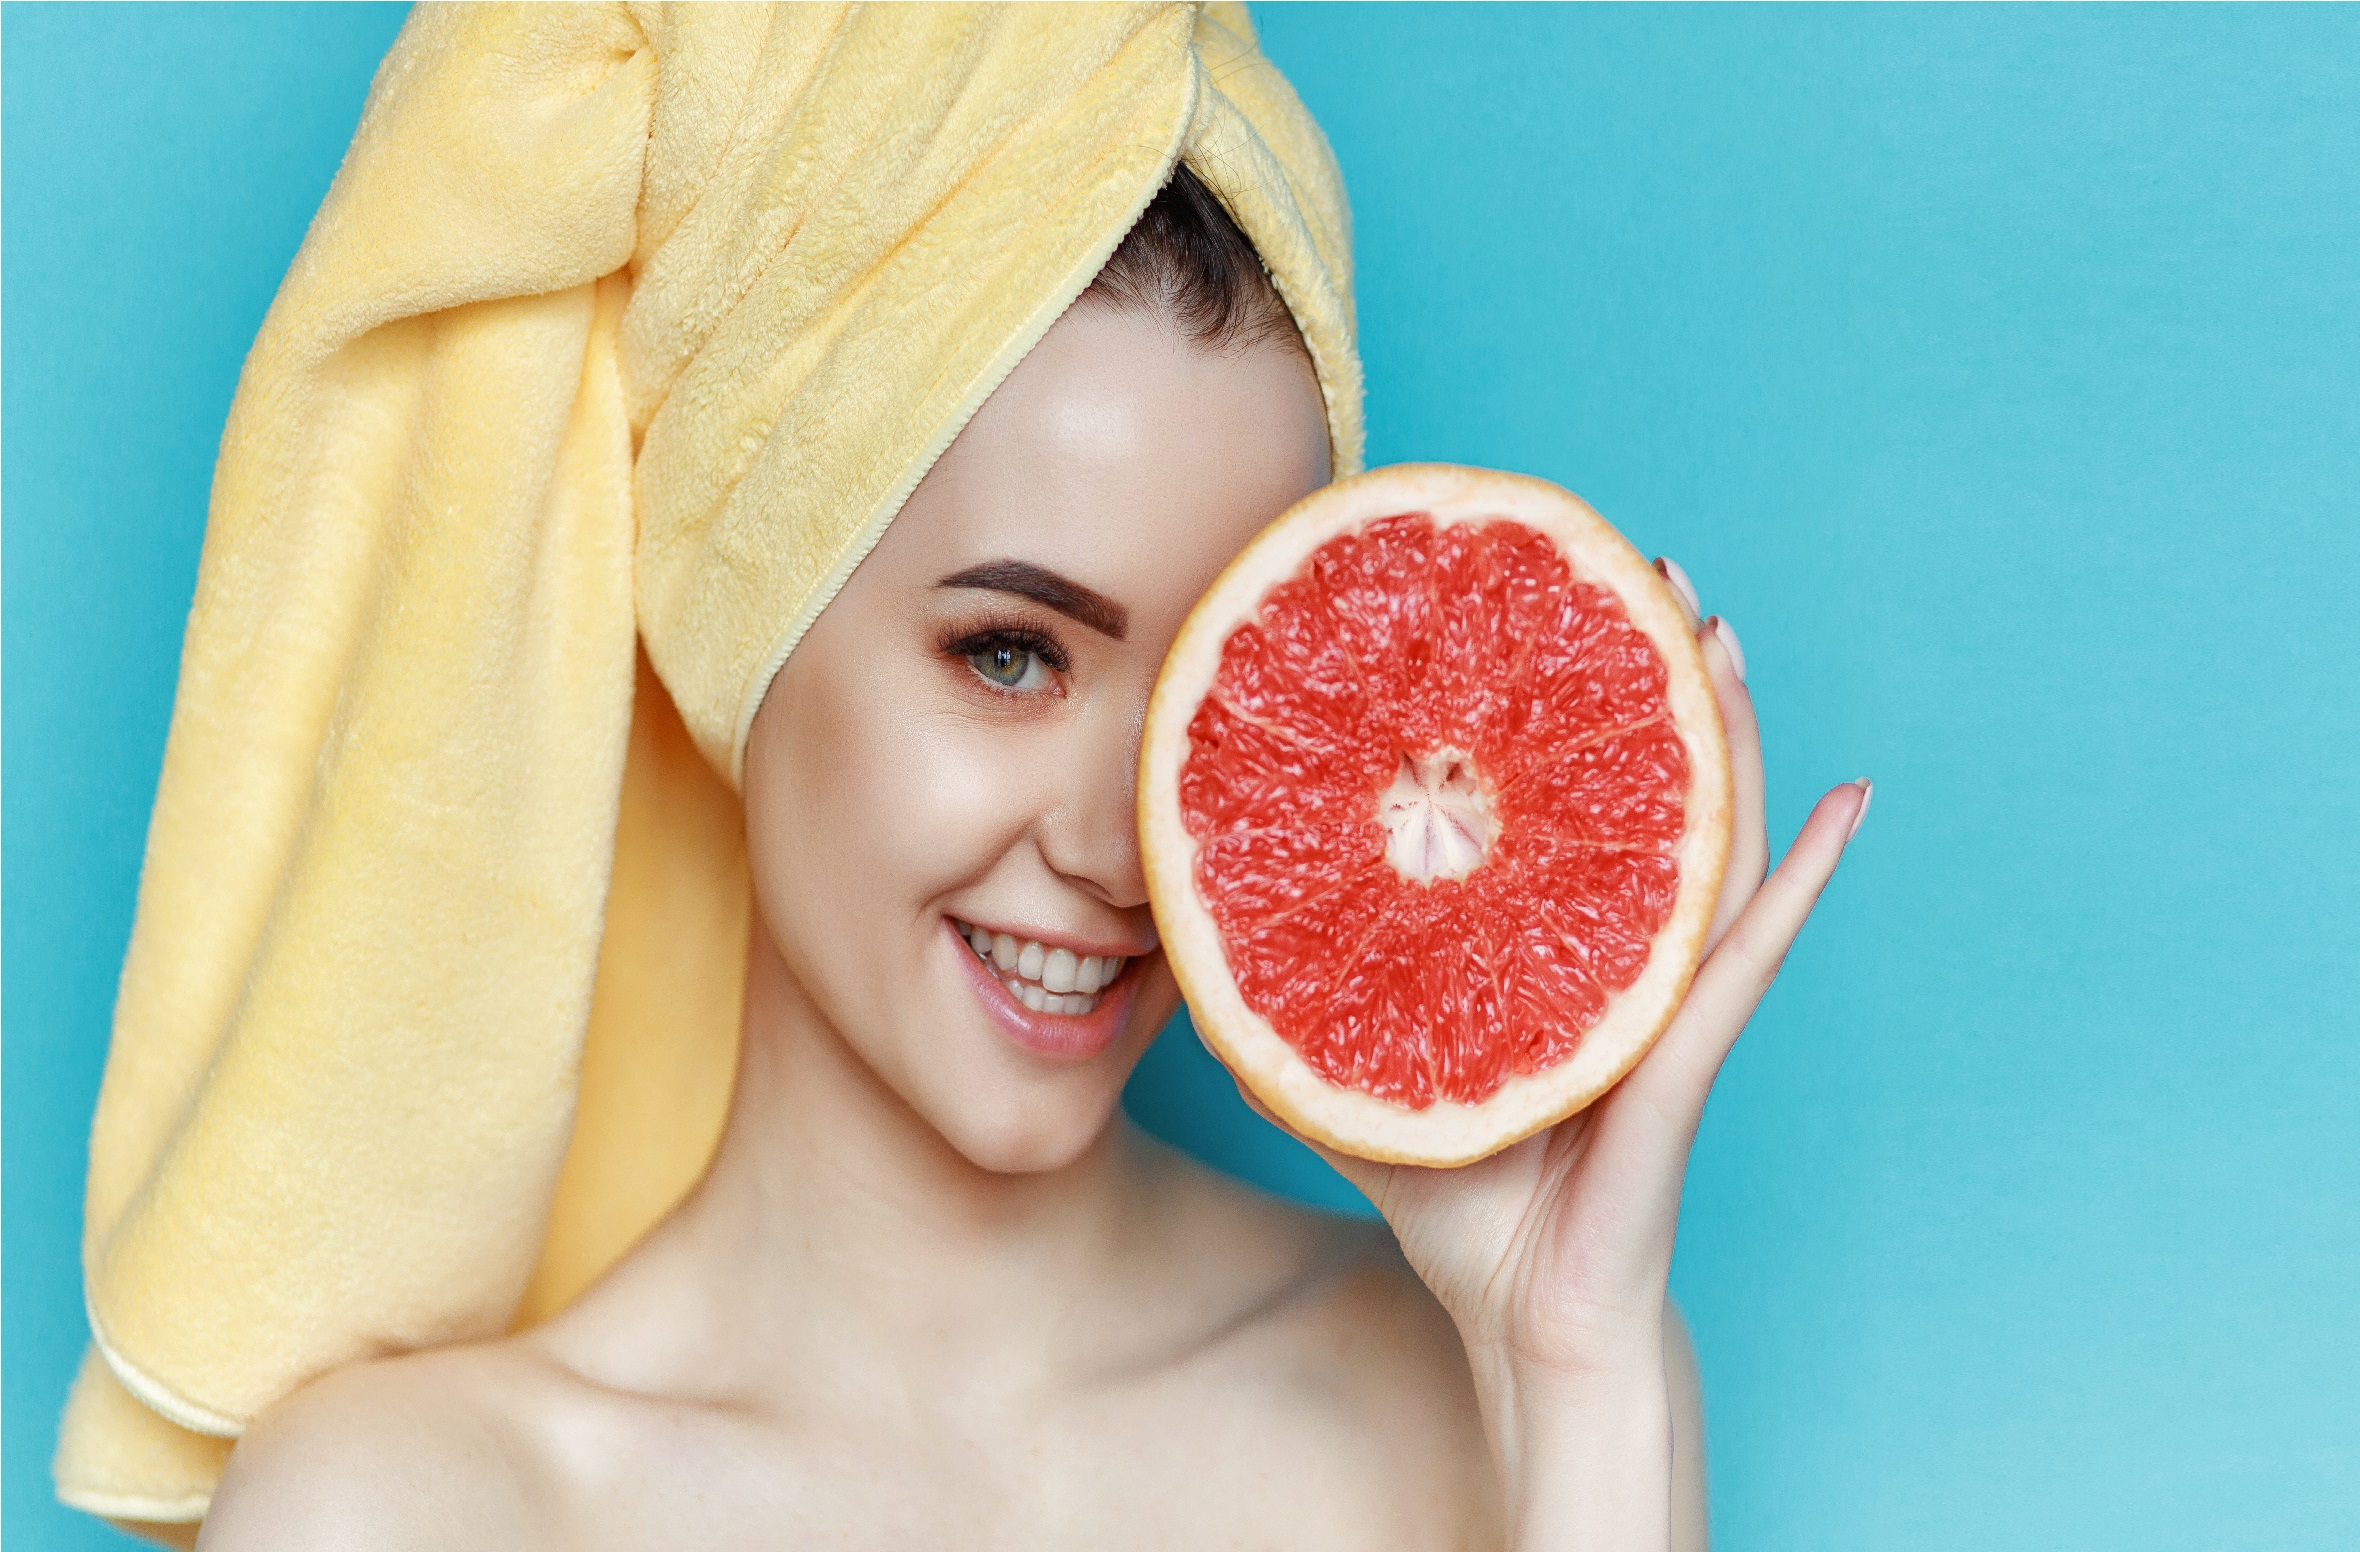 Portrait of young beautiful woman with healthy glow perfect smooth skin holds piece of grapefruit, closing one eye. Natural cosmetics, skincare, wellness, facial treatment, cosmetology concept.